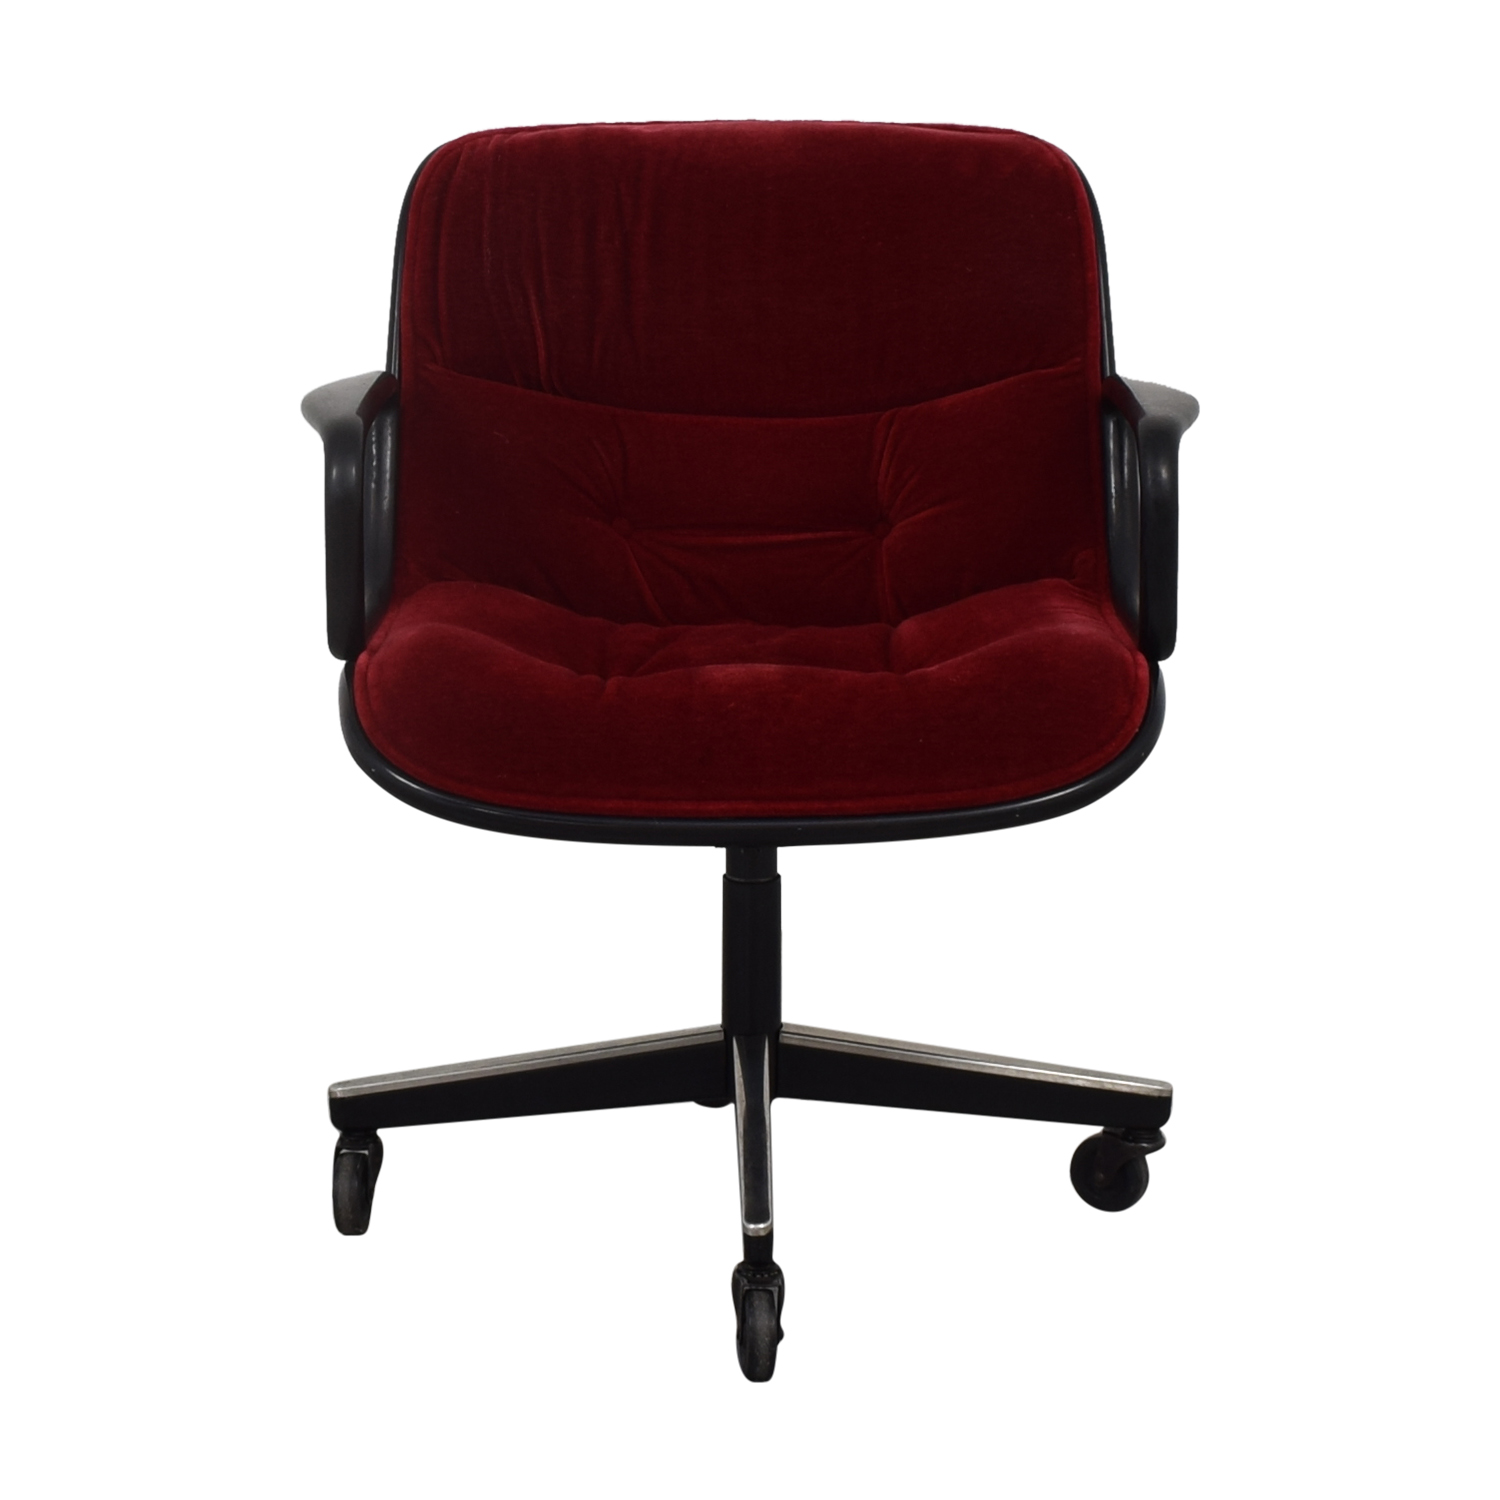 Knoll Knoll Pollock Executive Chair coupon